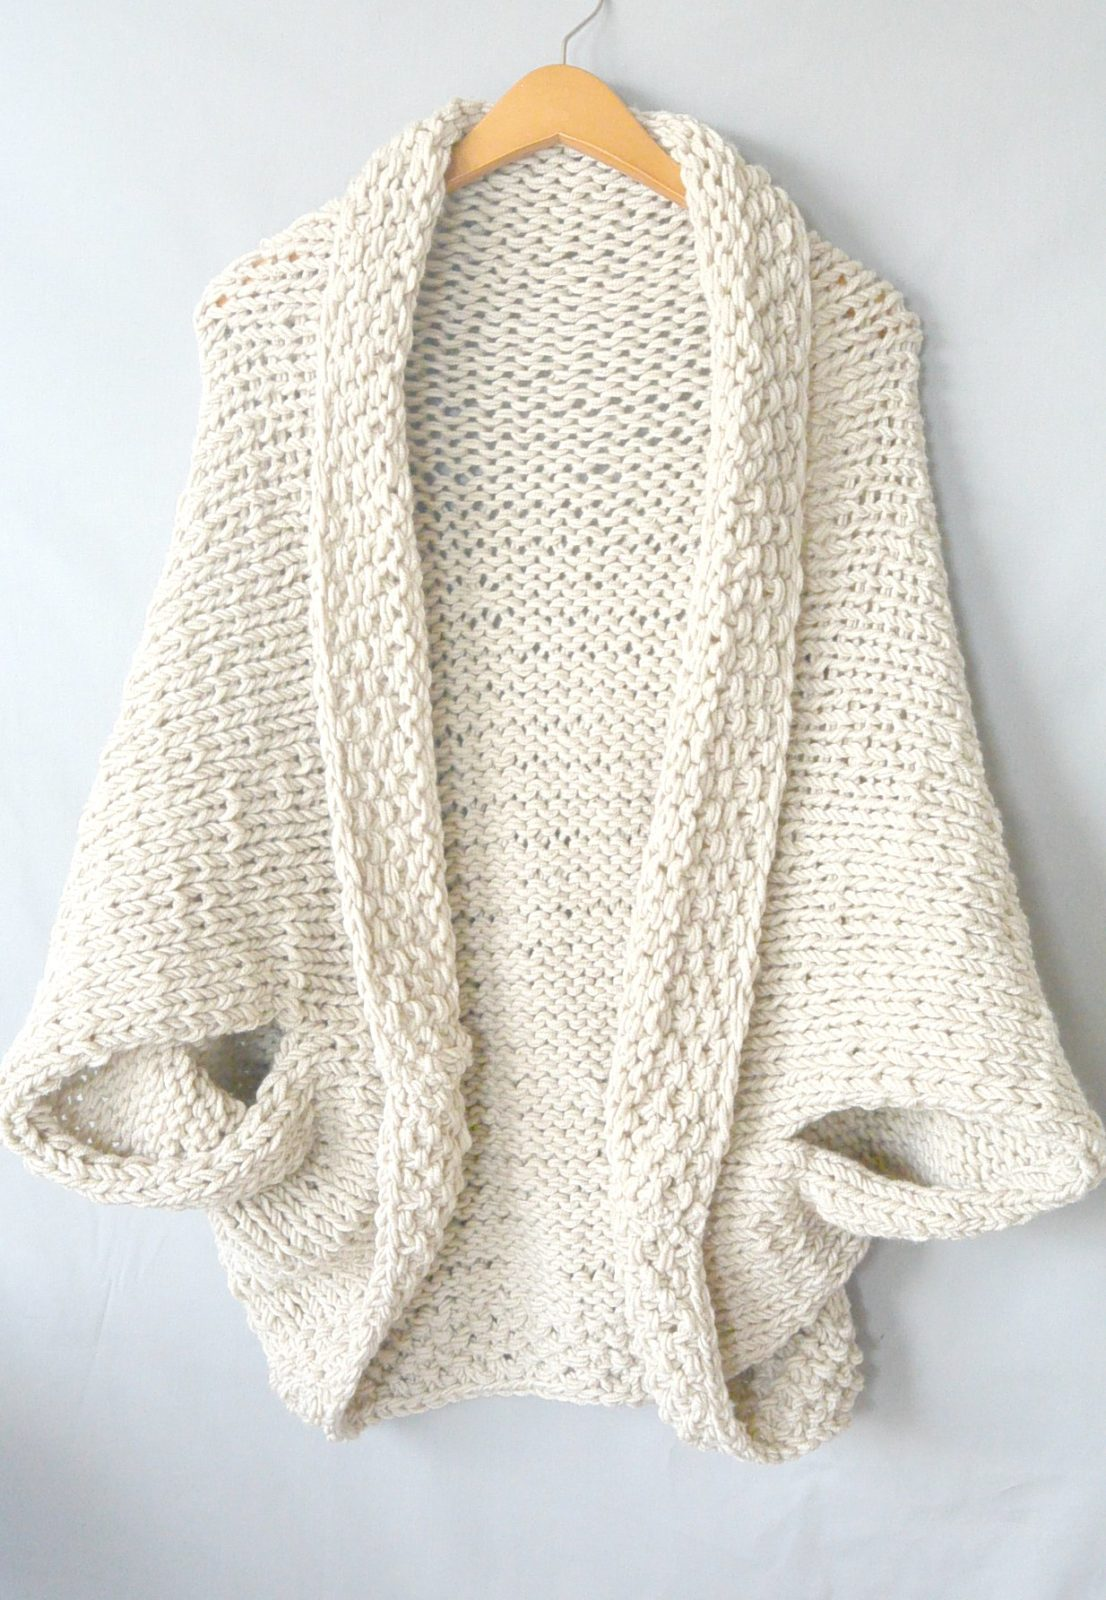 Knitting Patterns Sweater : Easy sweater pattern knit cardigan with buttons